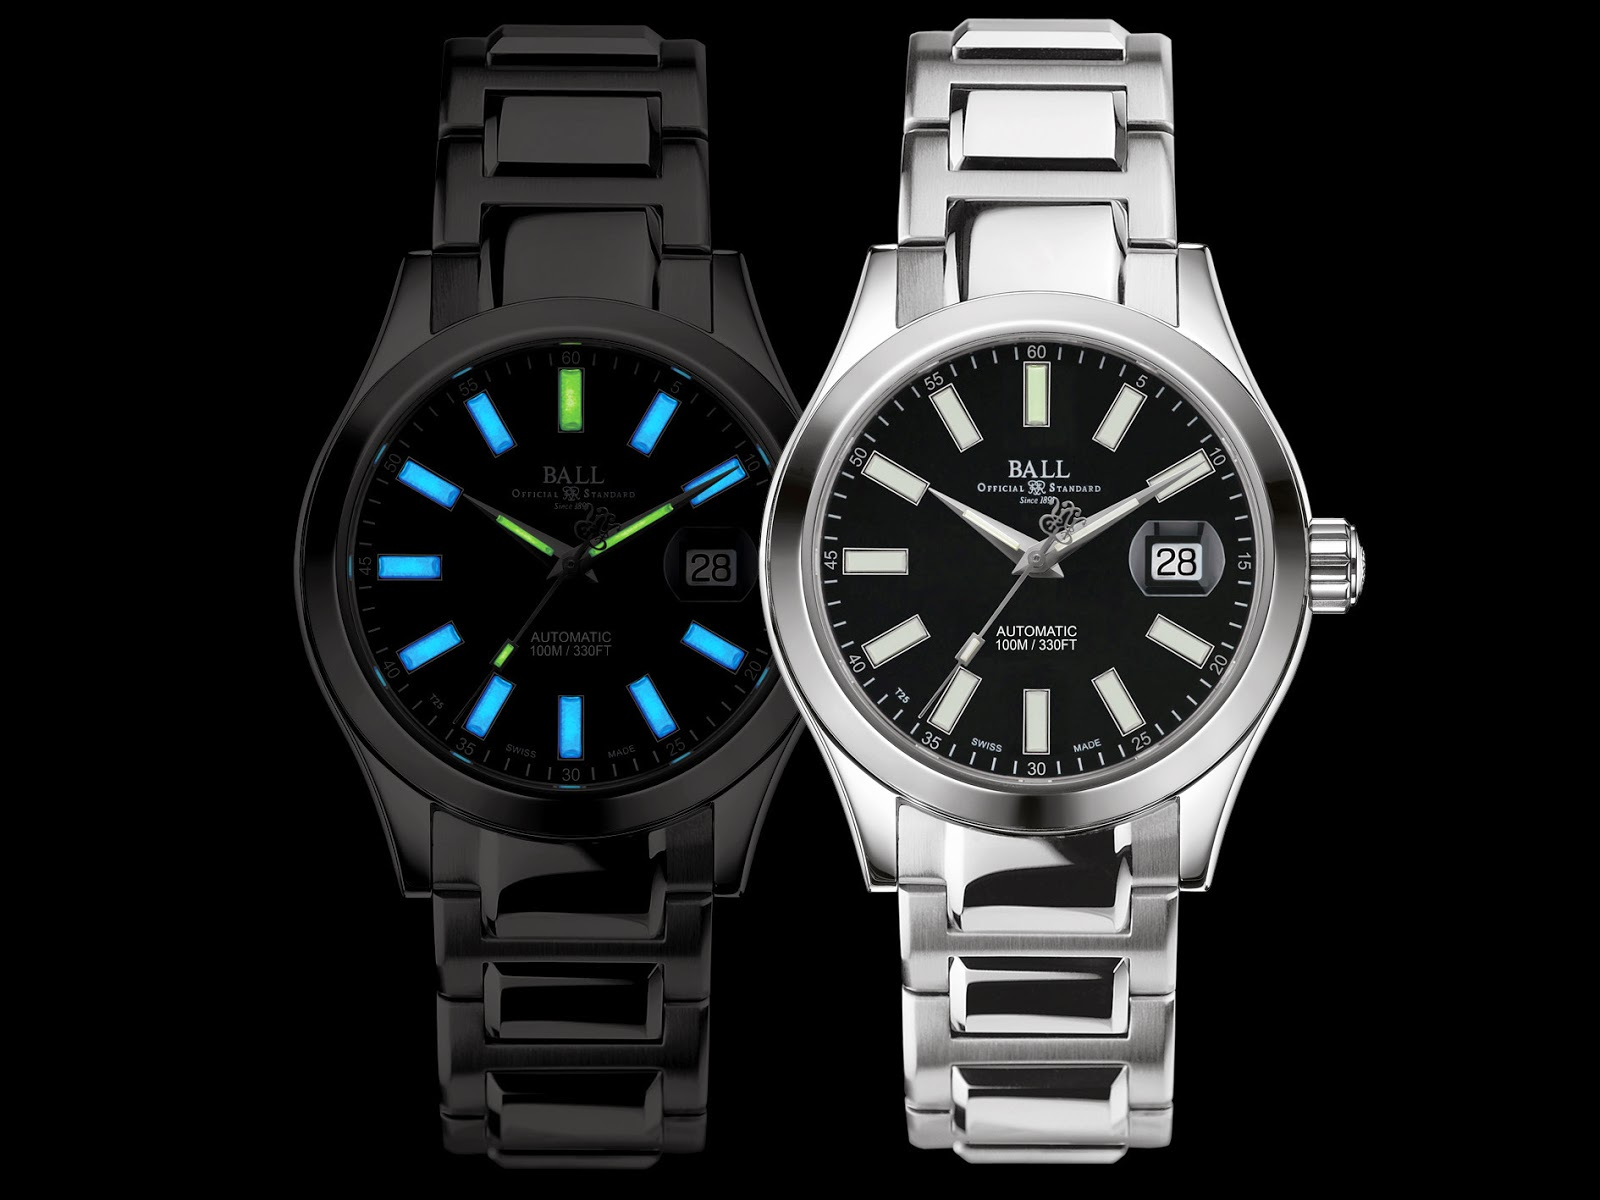 New grail watch a ball marvelight a datejust homage watch freeks for Ball watches